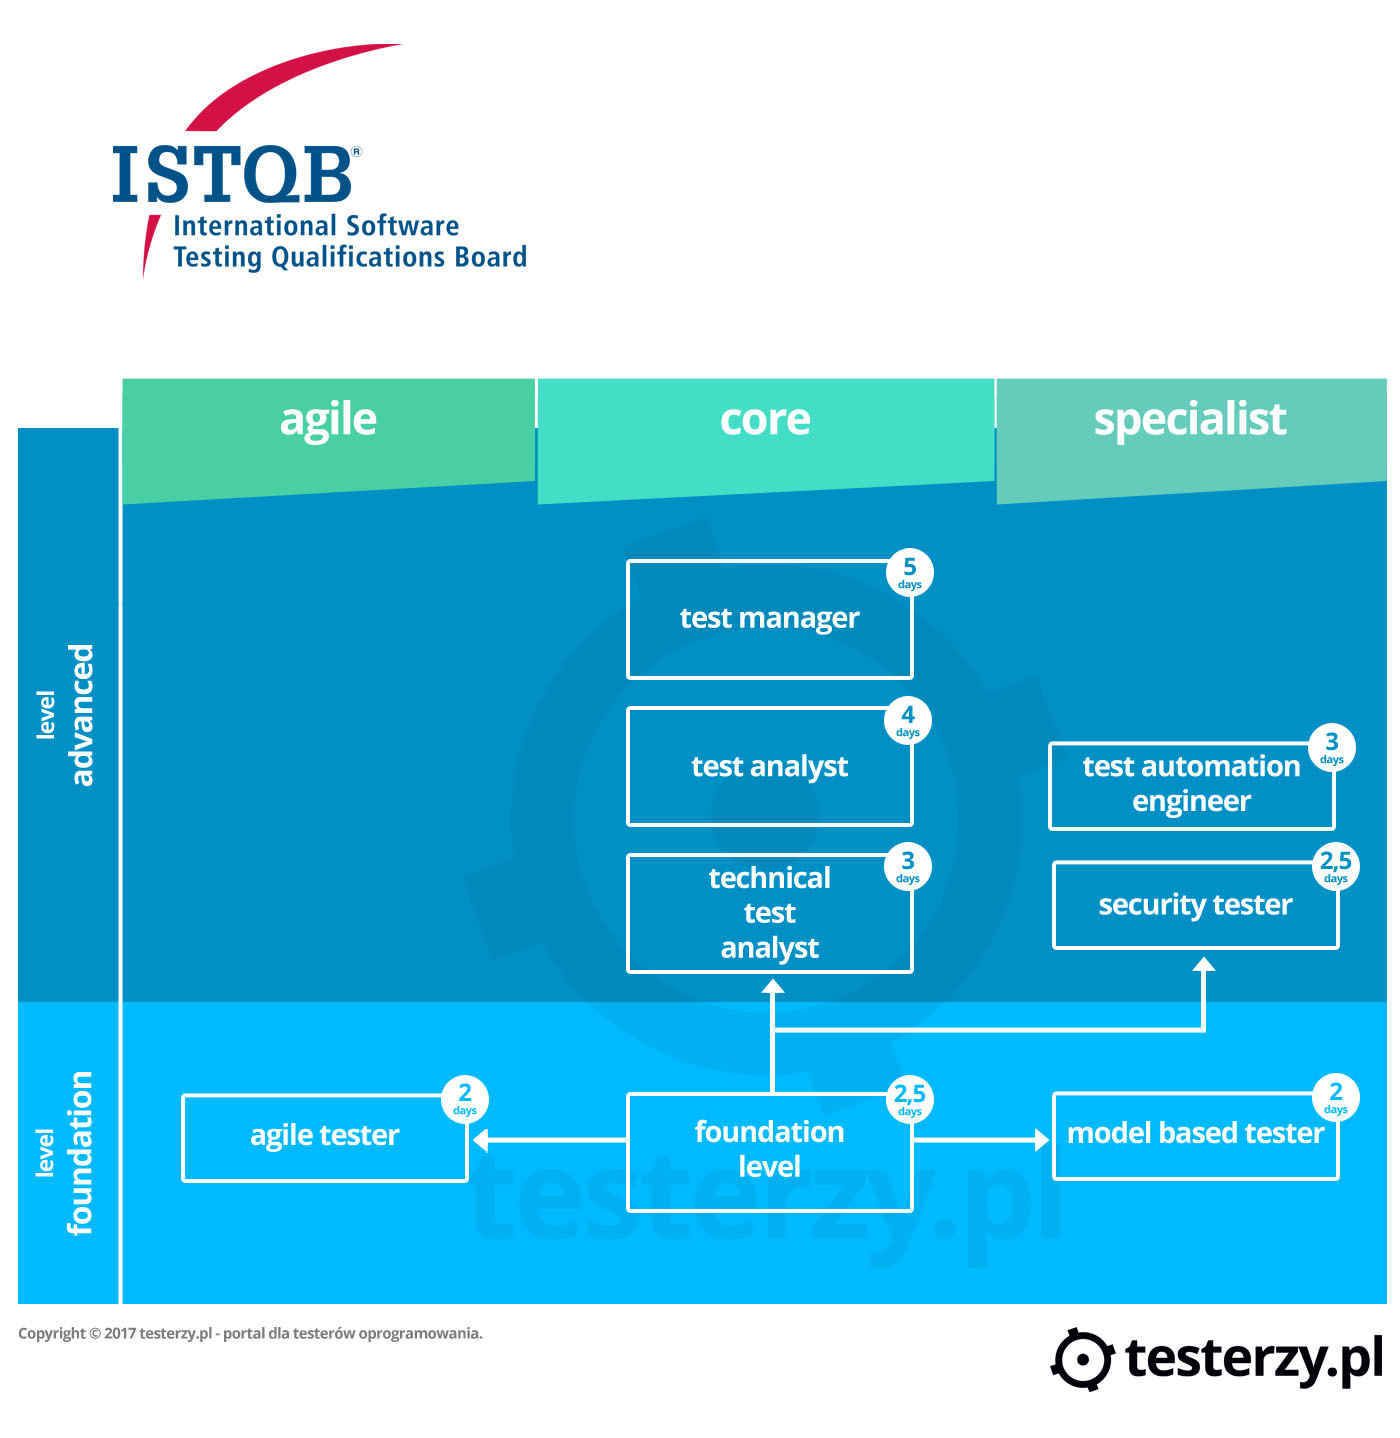 istqb_full_certification_en